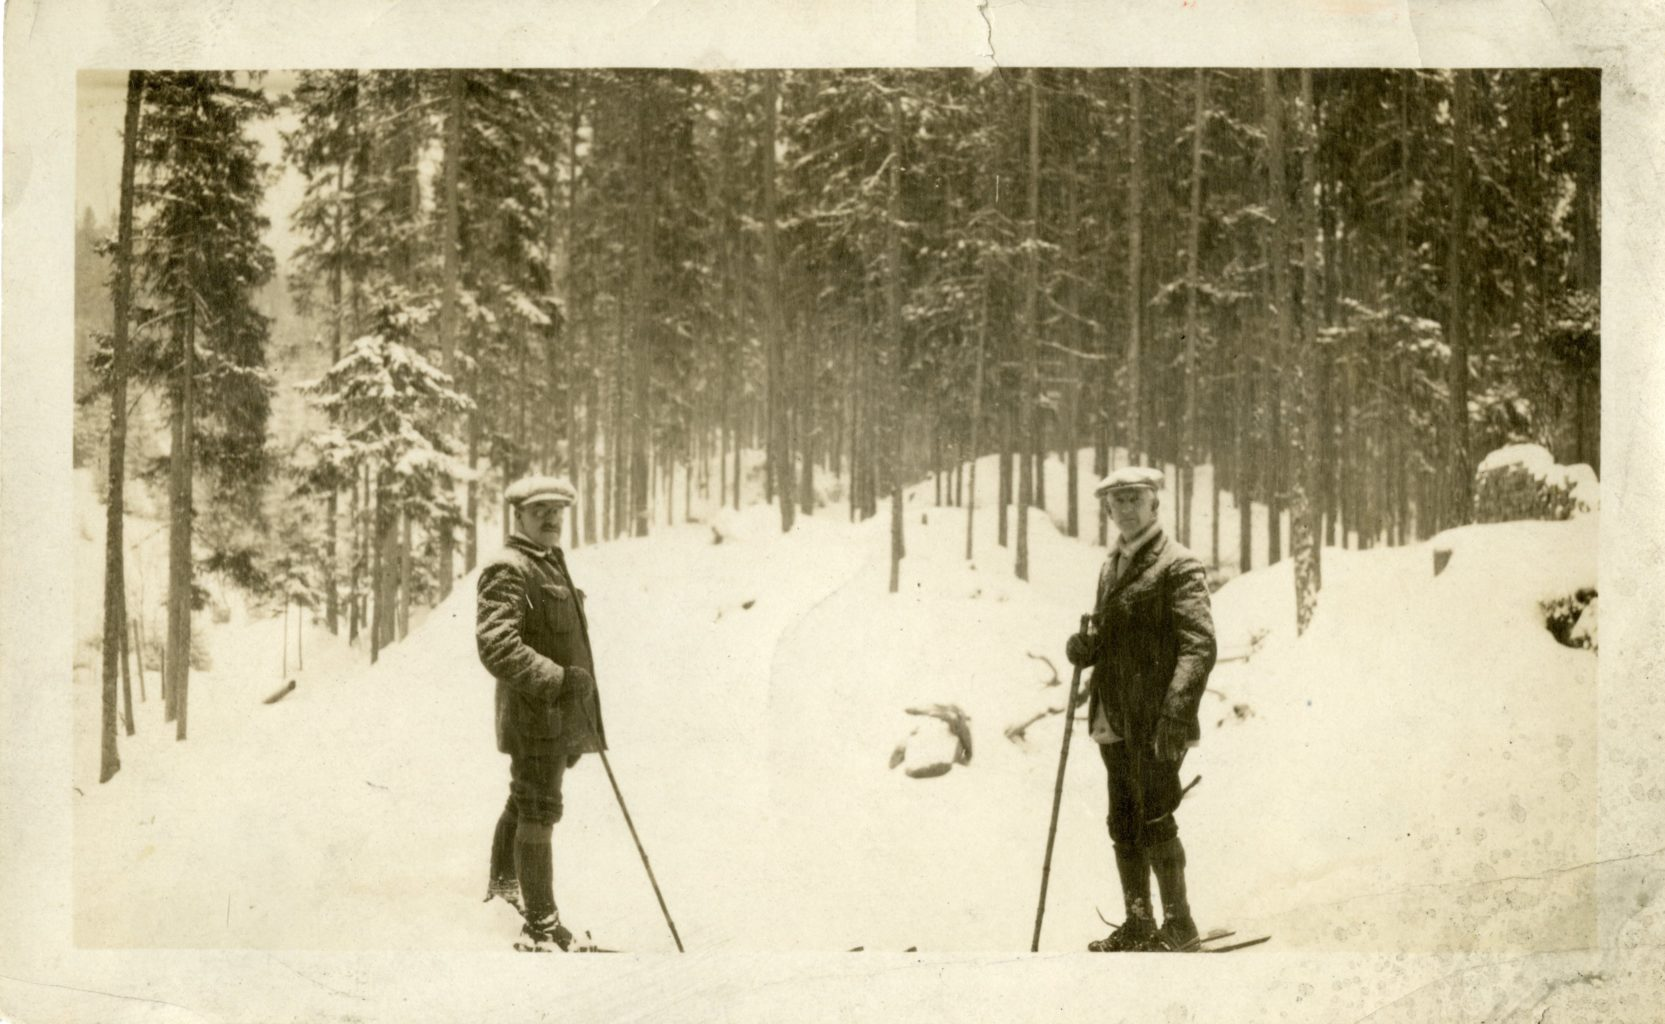 Two men skiing in the snowy woods.